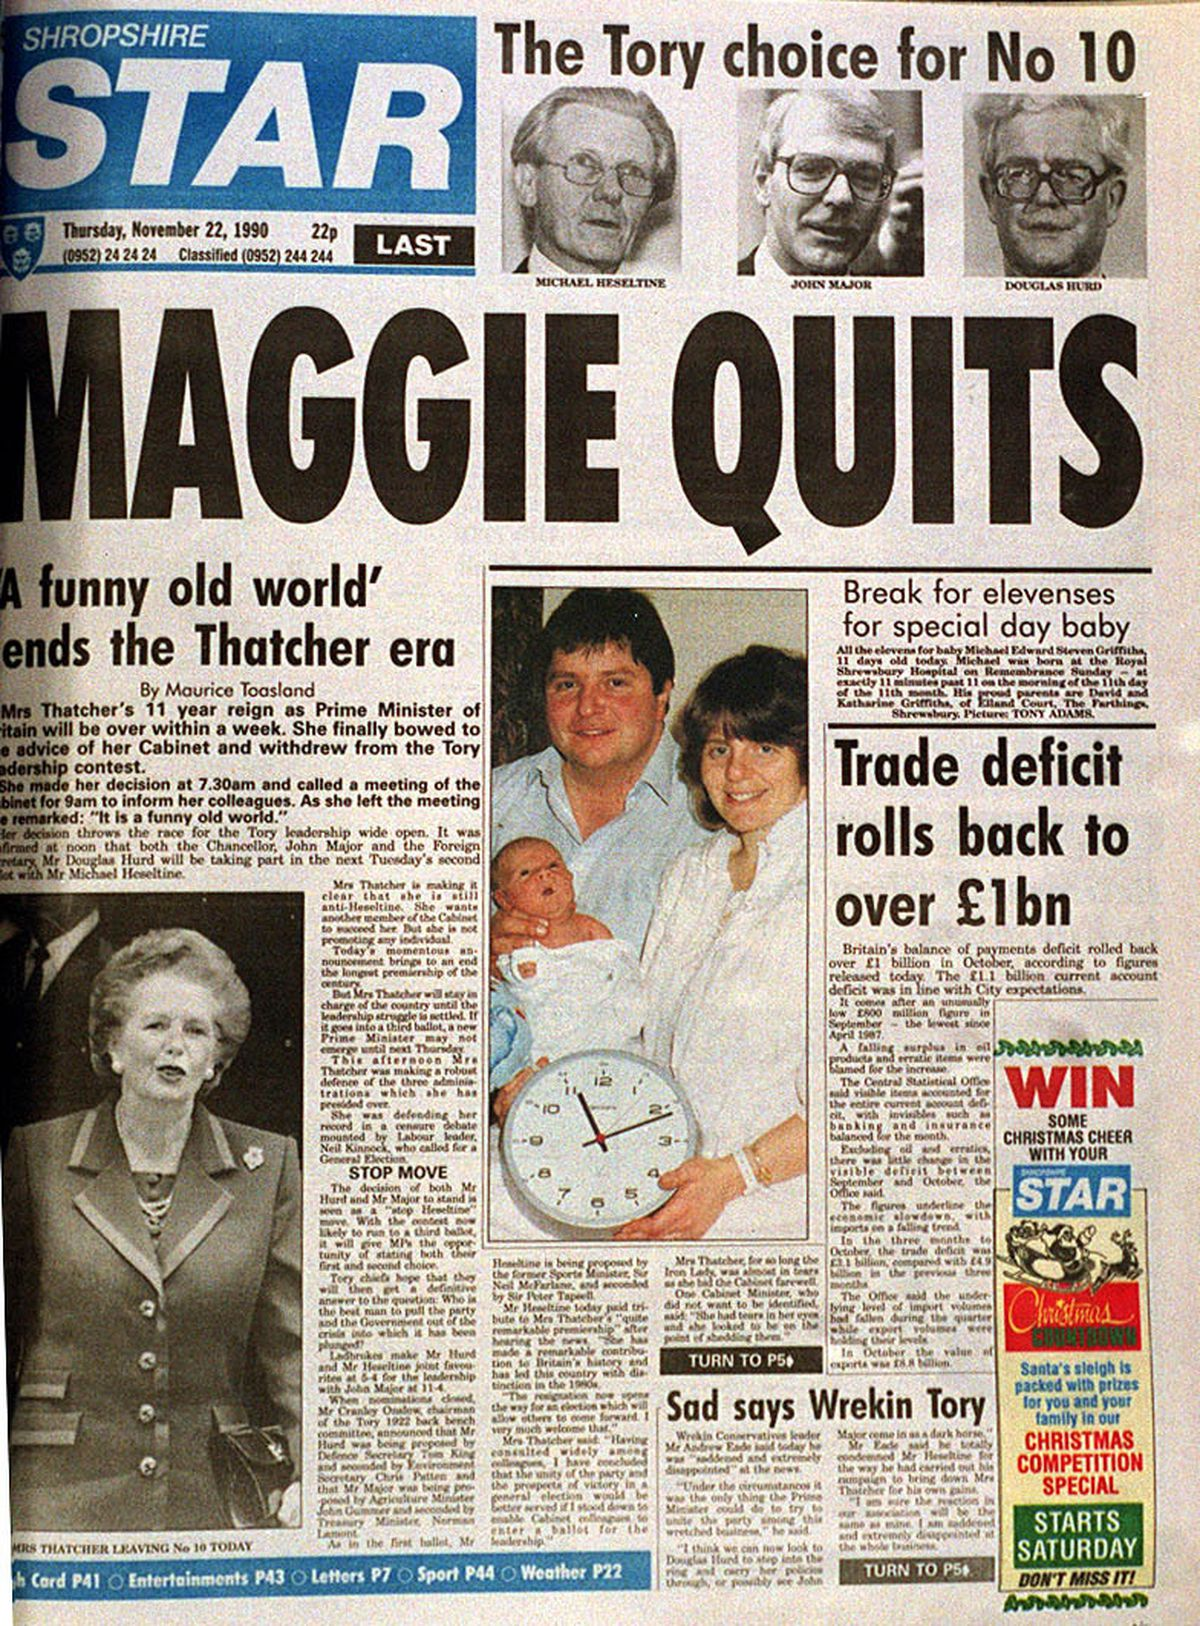 How the Shropshire Star reported Mrs Thatcher's resignation